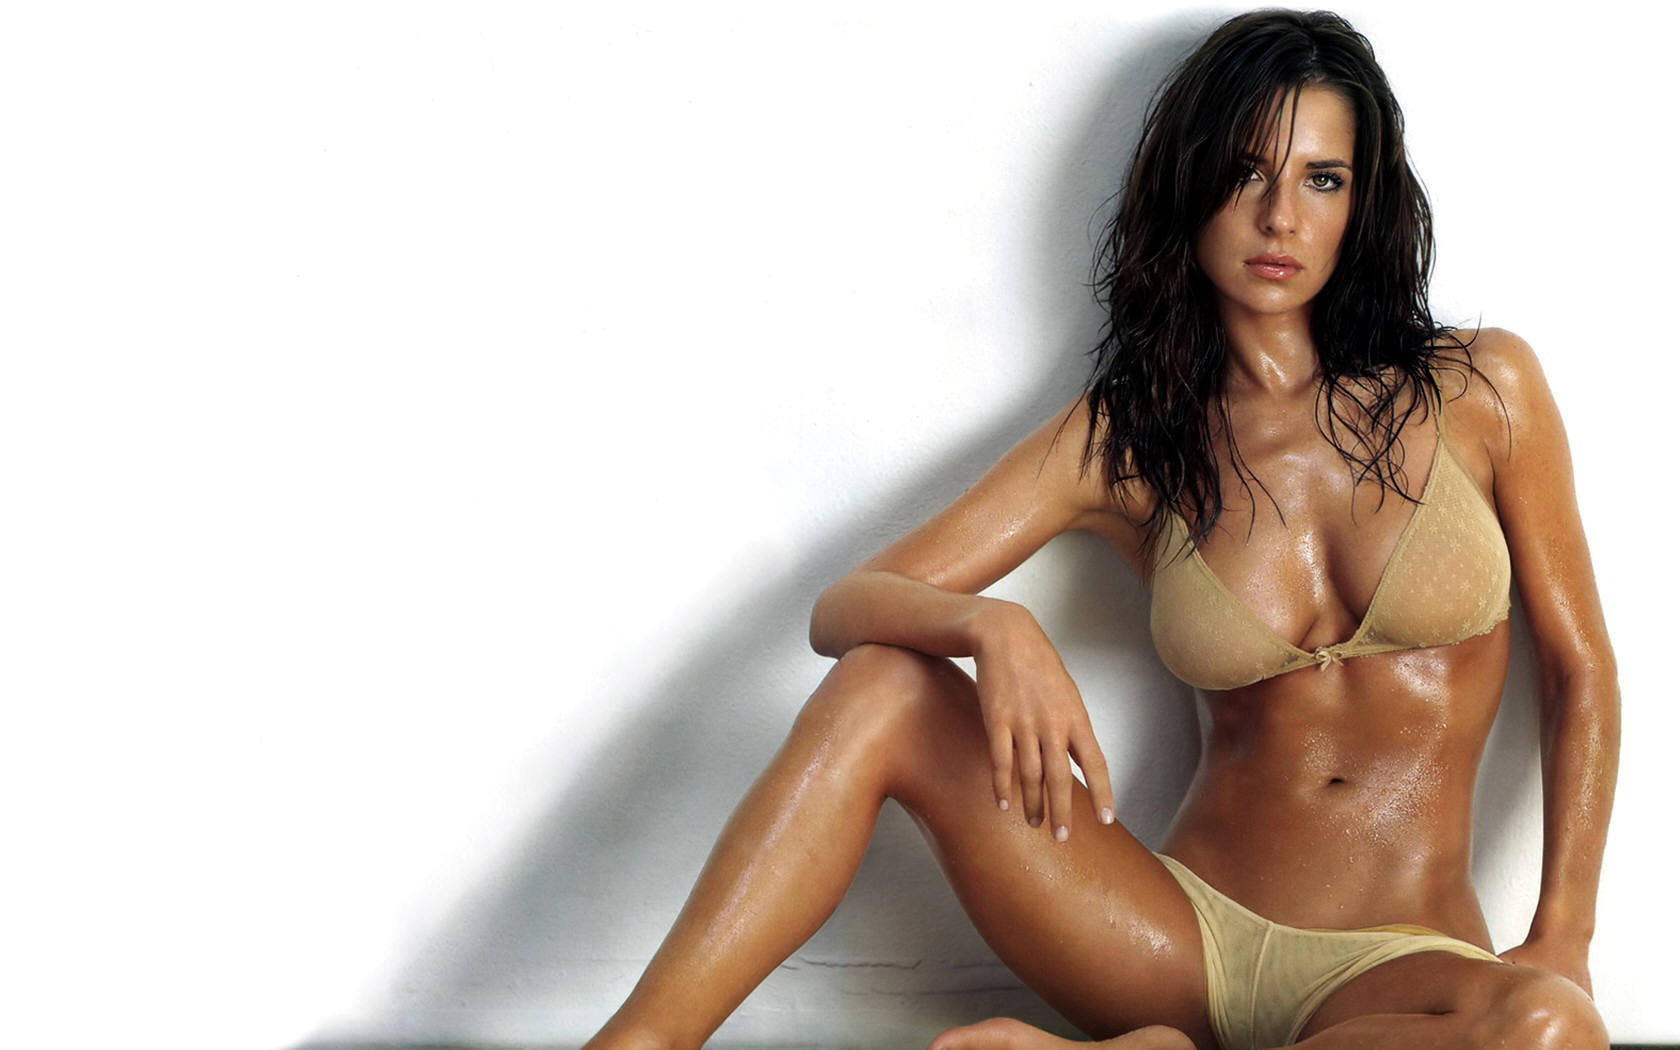 Kelly - Kelly Monaco Wallpaper (11466290) - Fanpop